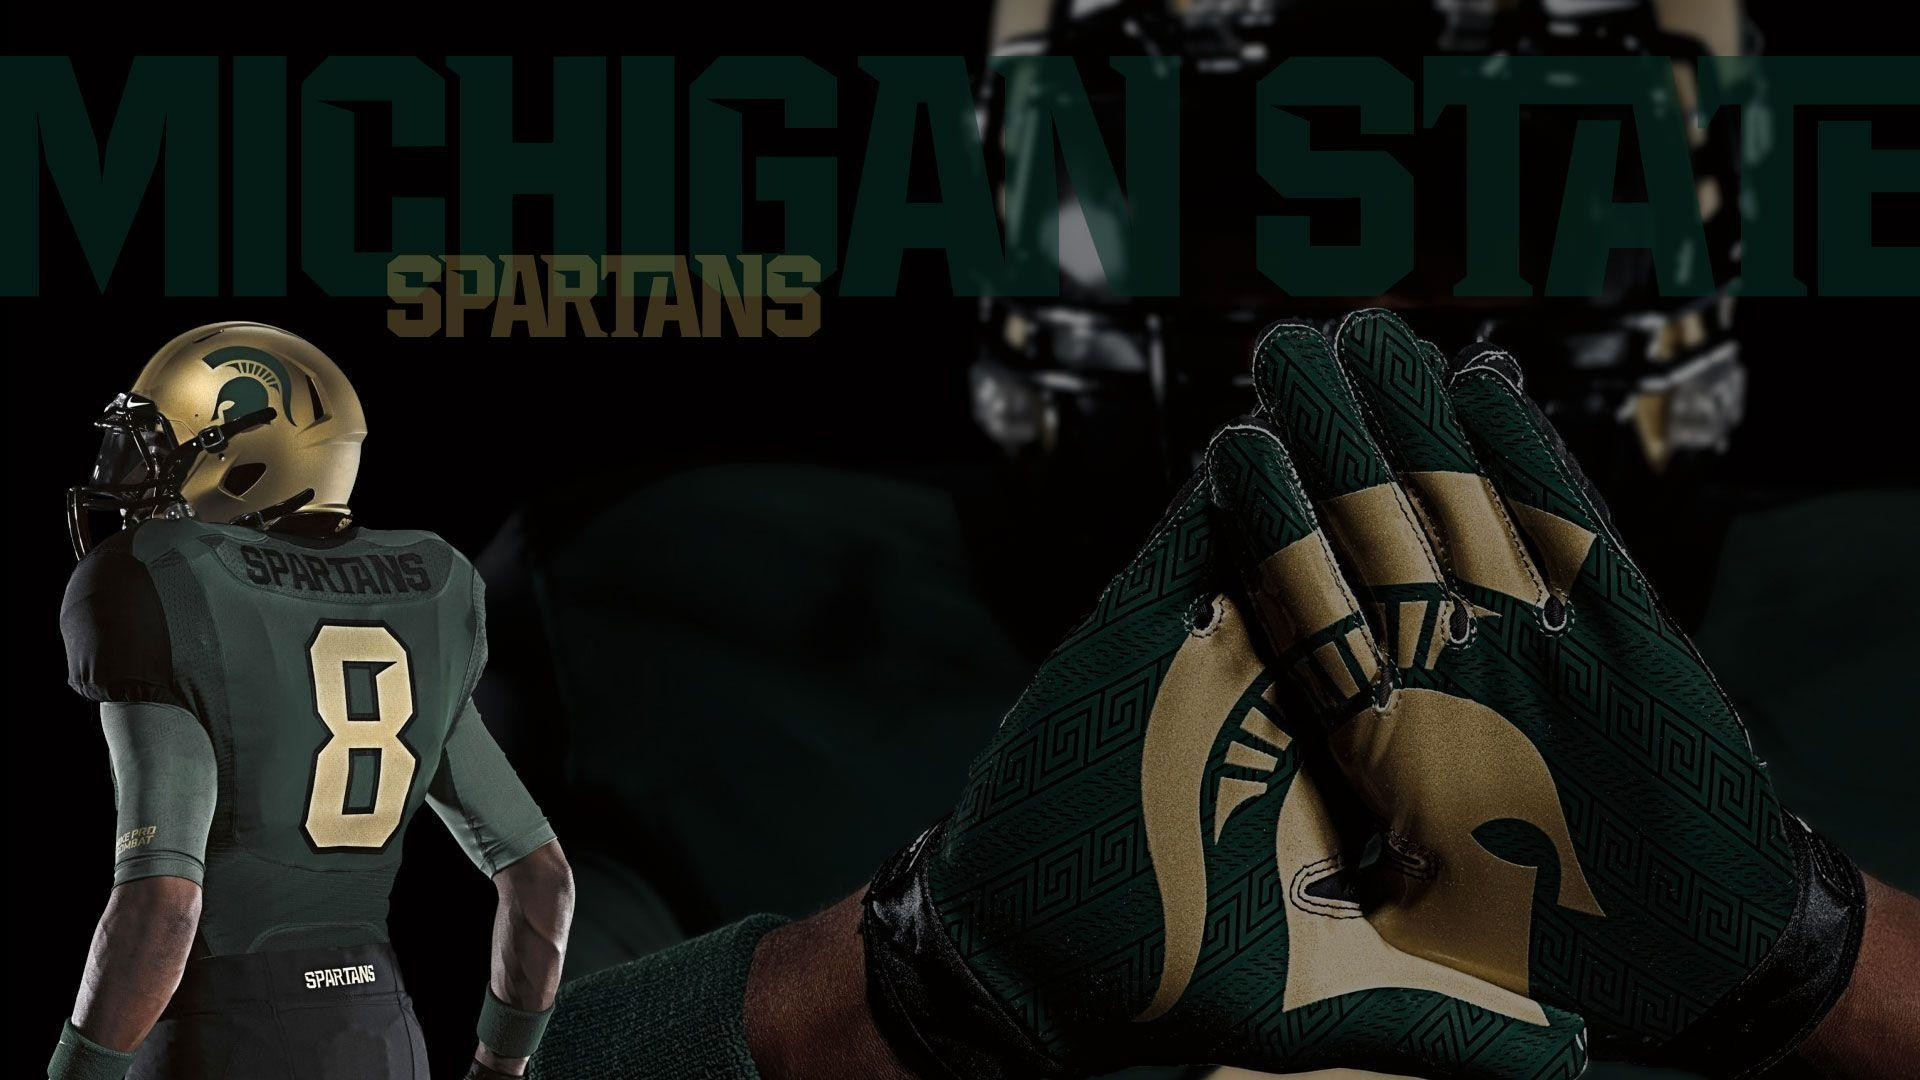 Michigan State Spartans Wallpaper Images & Pictures – Becuo